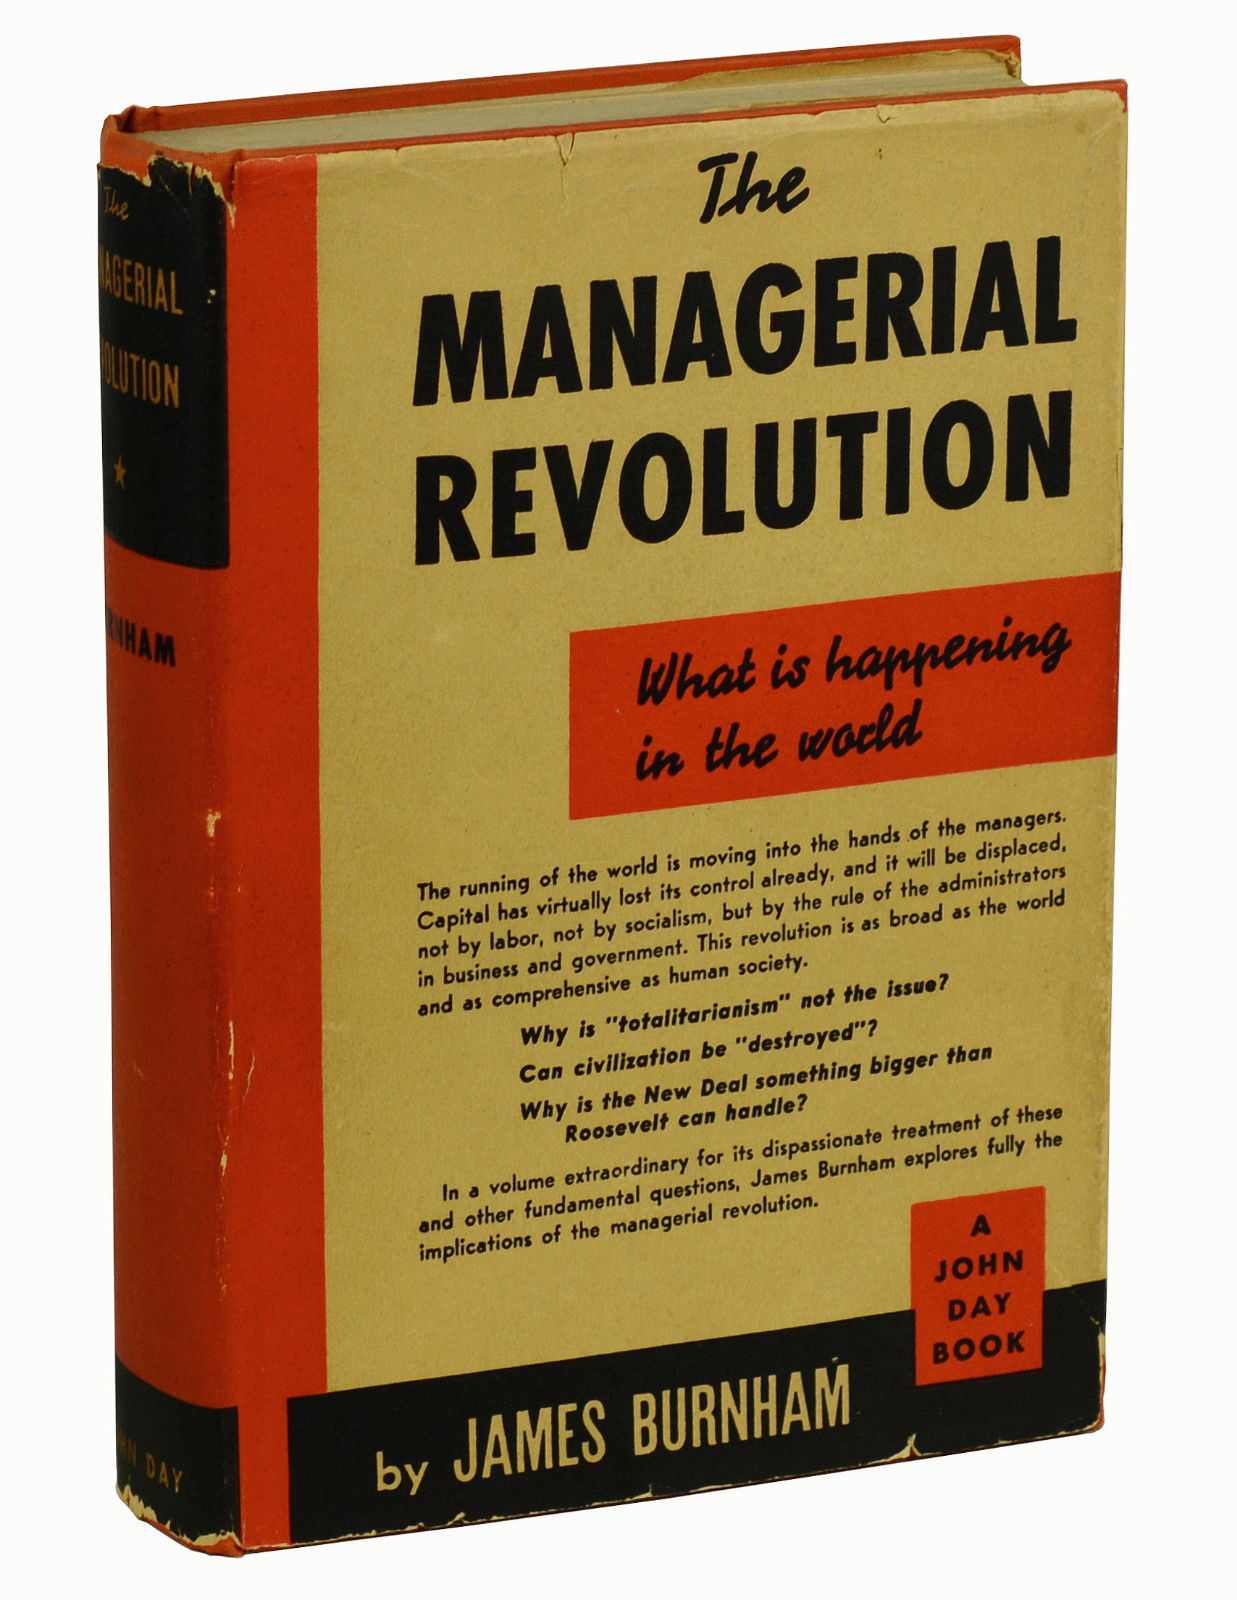 The Managerial Revolution: What is Happening in the World   James Burnham    First Edition